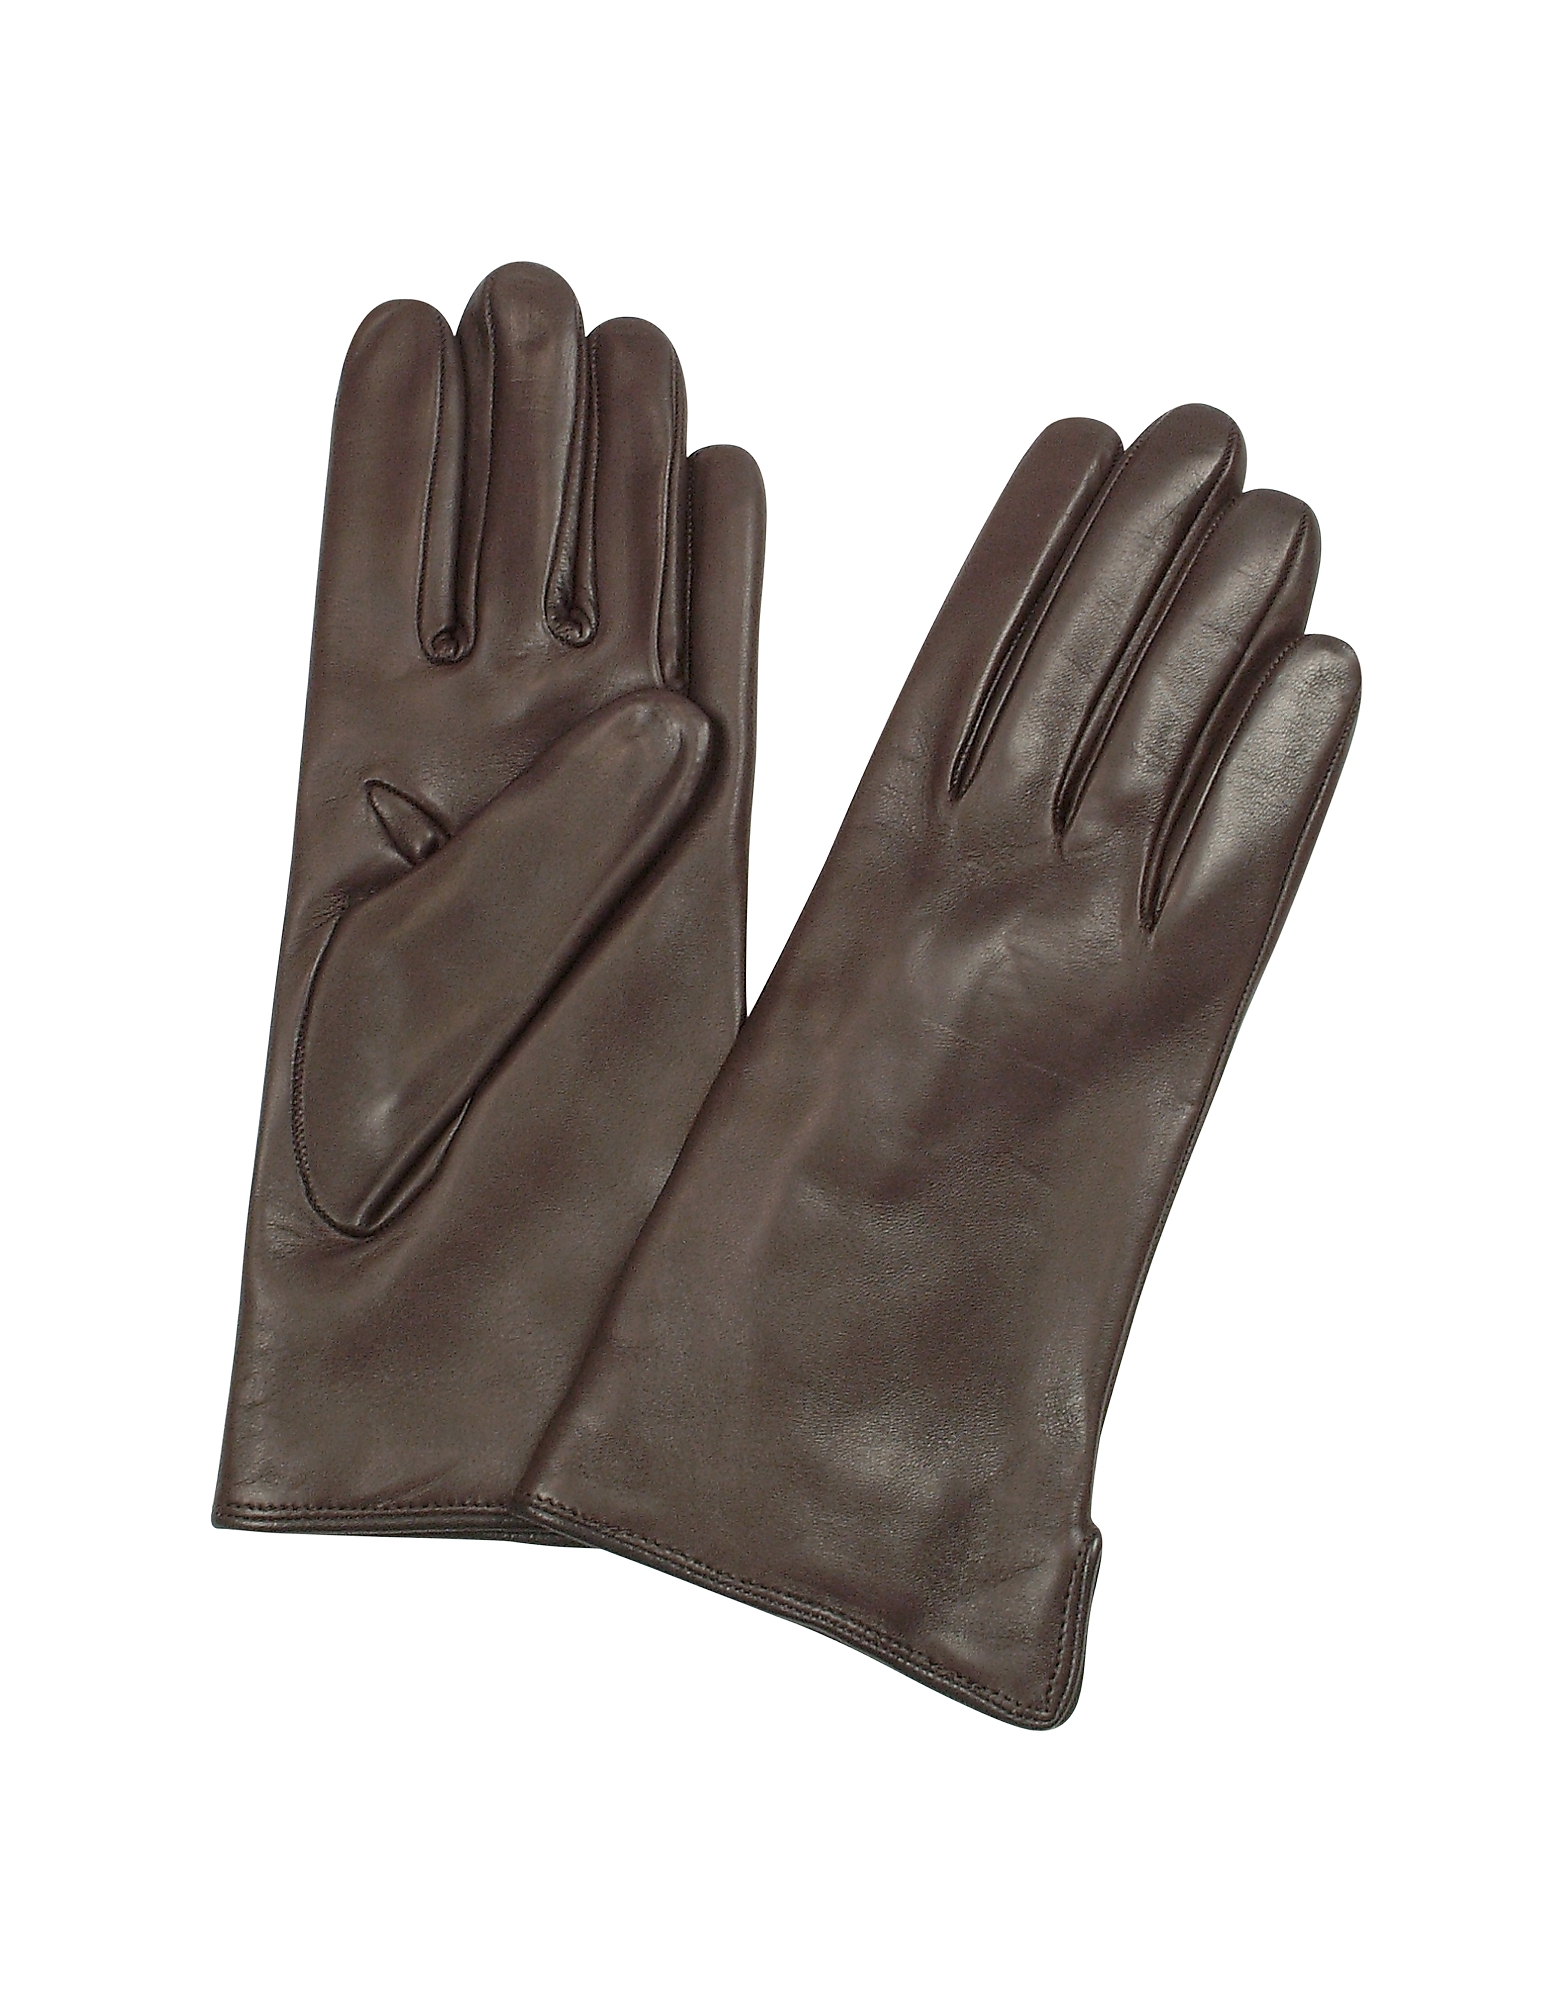 Forzieri Women's Gloves, Women's Dark Brown Cashmere Lined Italian Leather Gloves